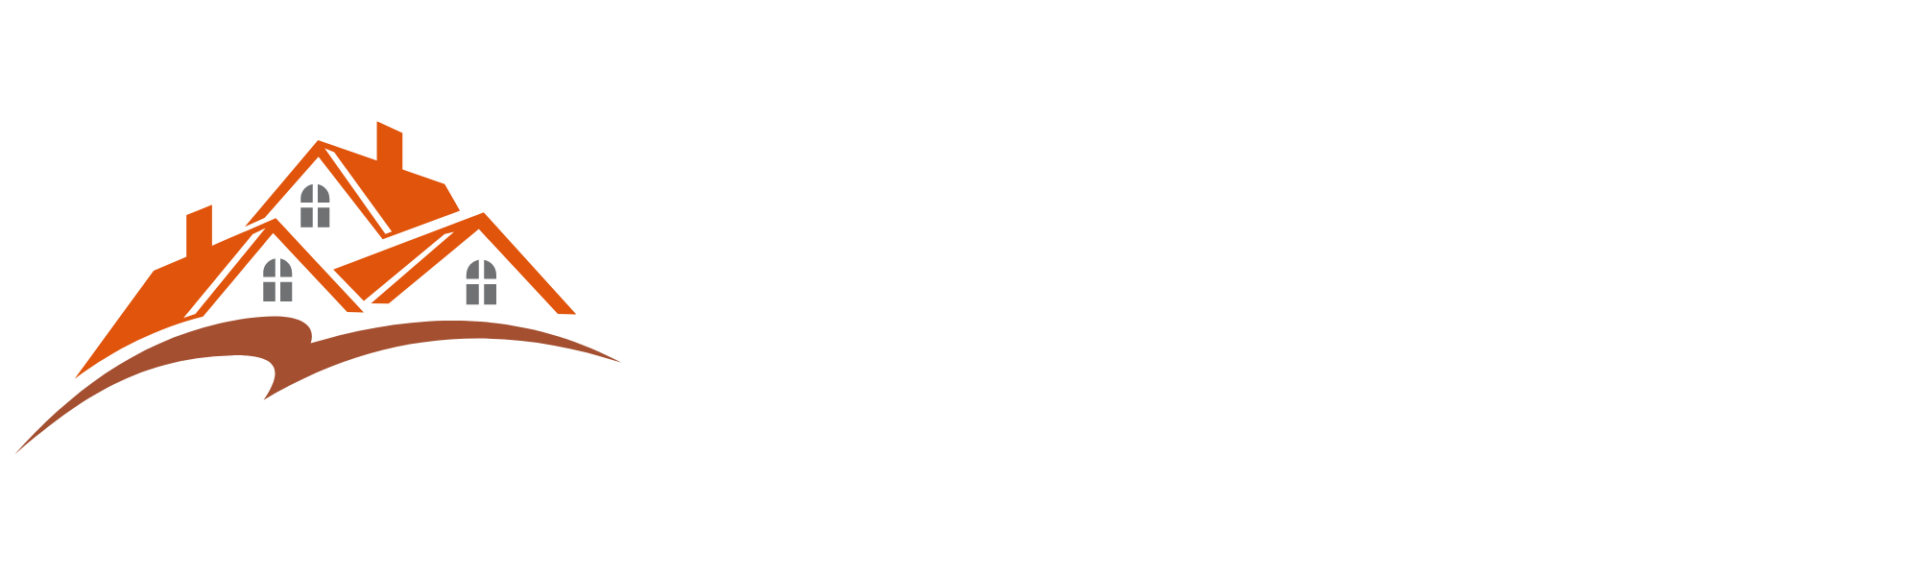 Sell My Home Cleveland logo